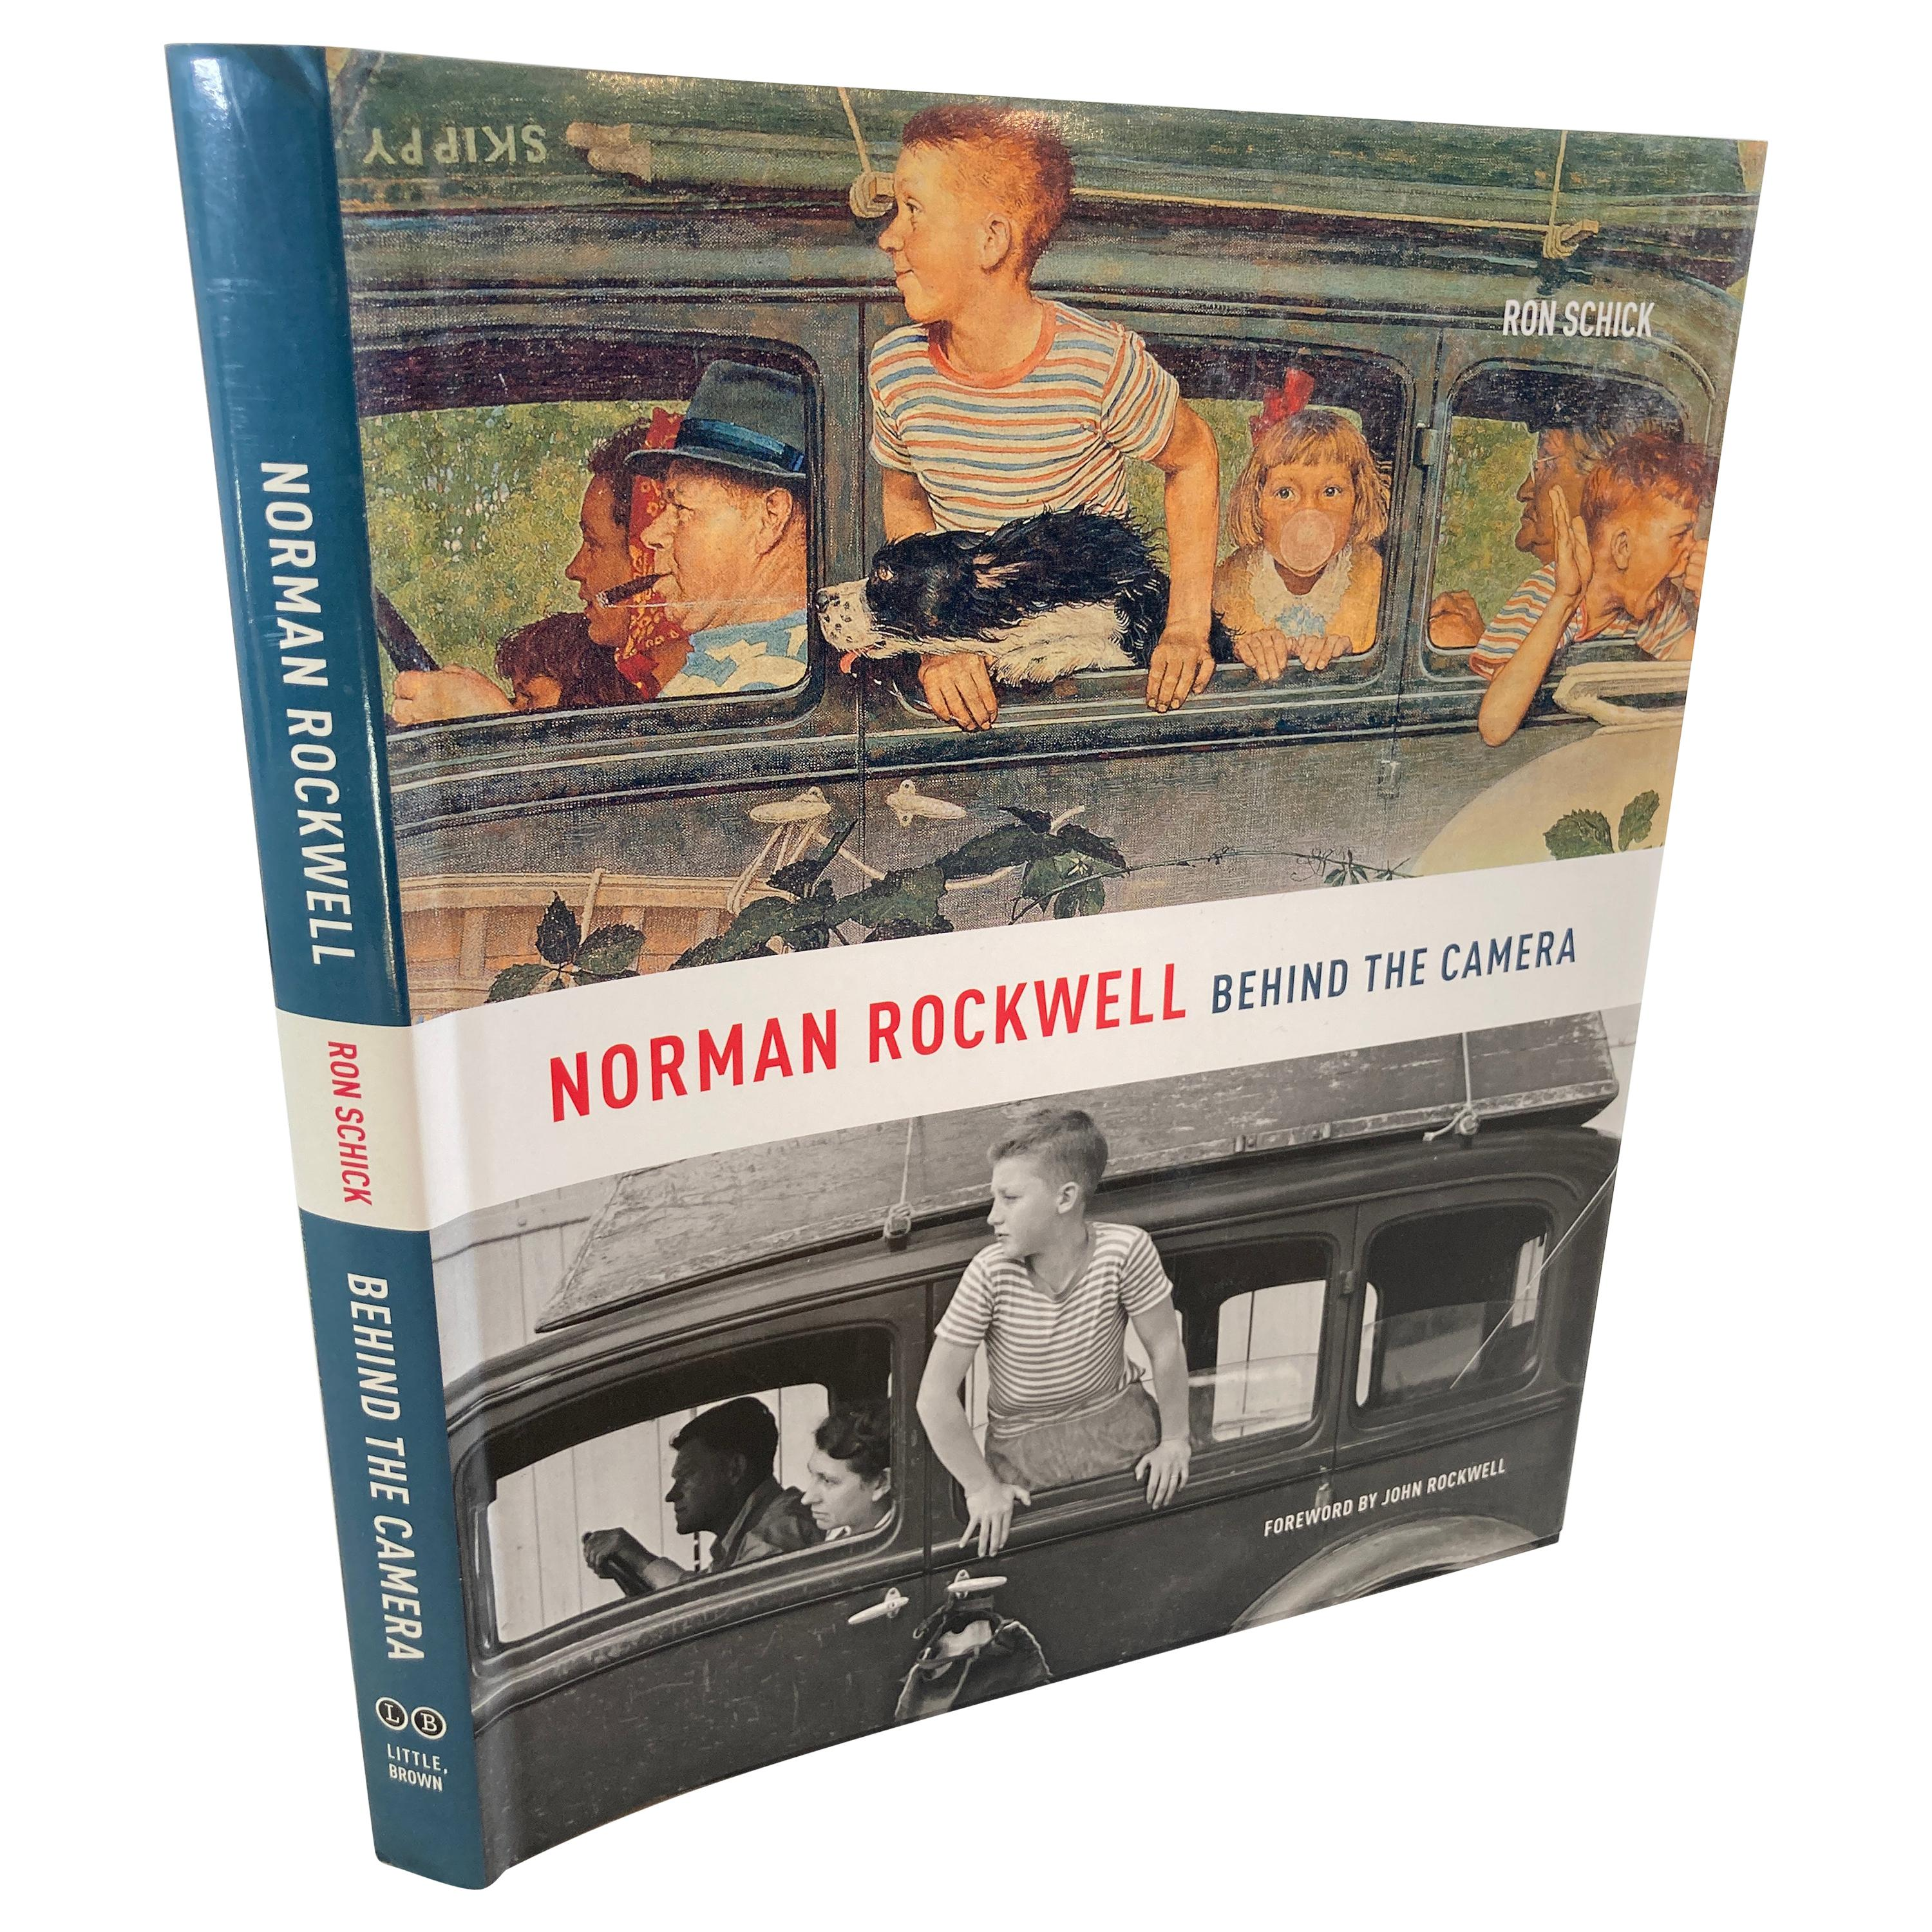 Norman Rockwell Behind the Camera Book by Norman Rockwell and Ron Schick